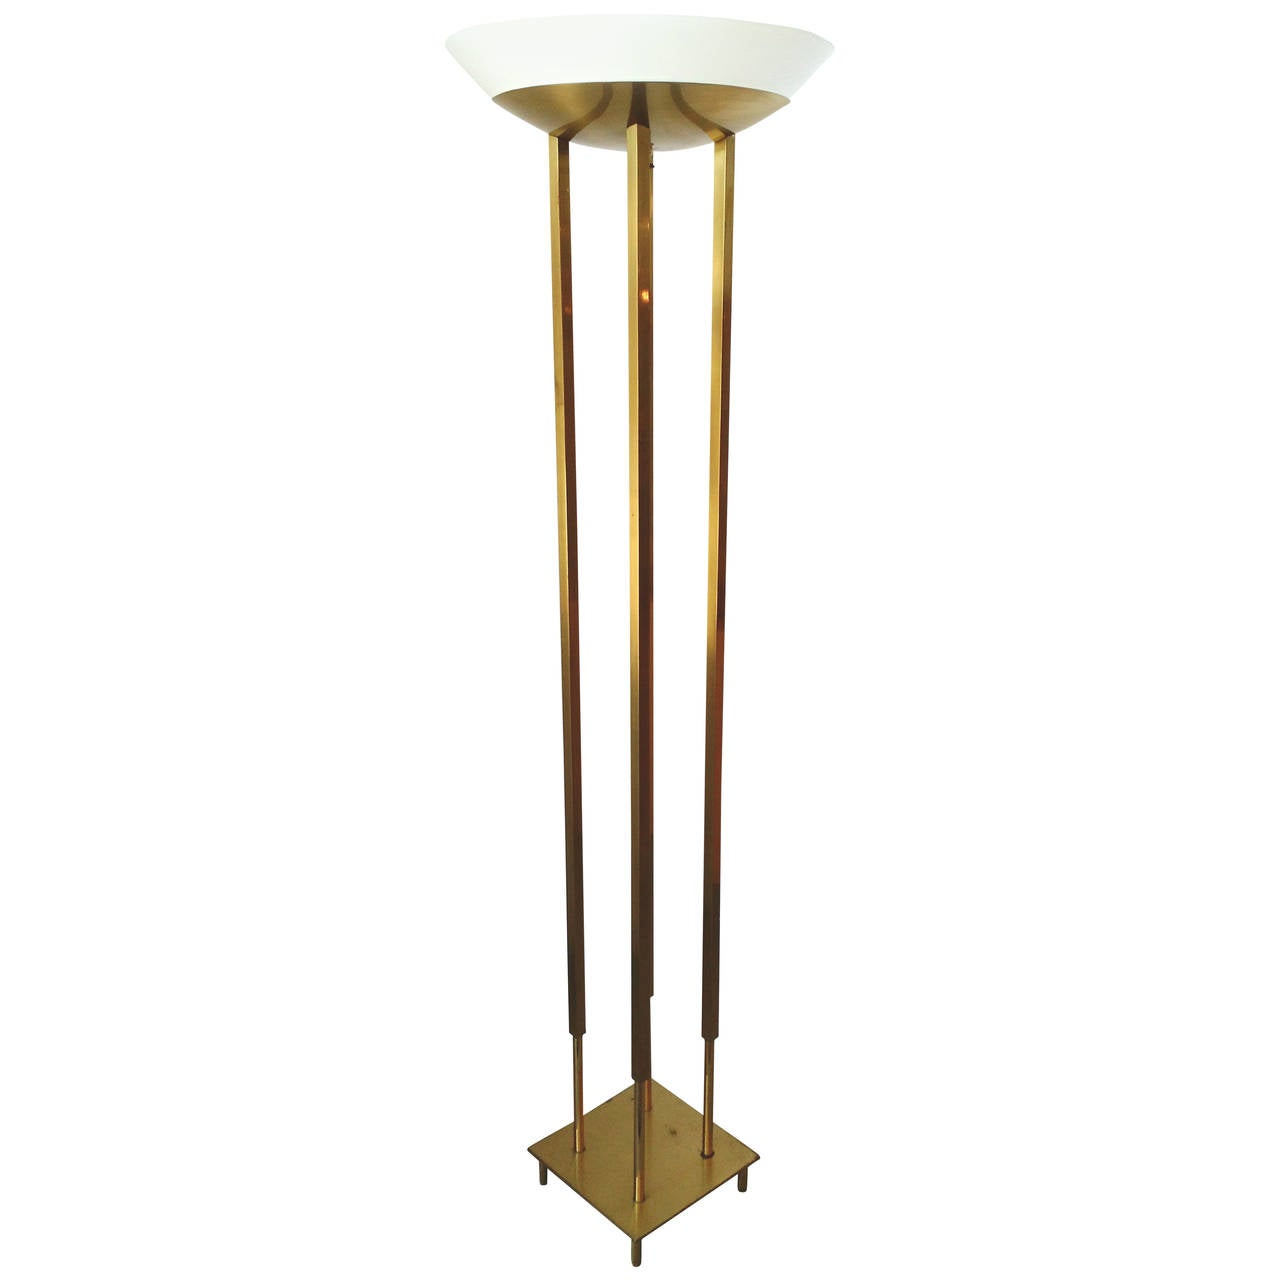 mid century modern brass floor torchiere lamp style of tommi parzinger. Black Bedroom Furniture Sets. Home Design Ideas